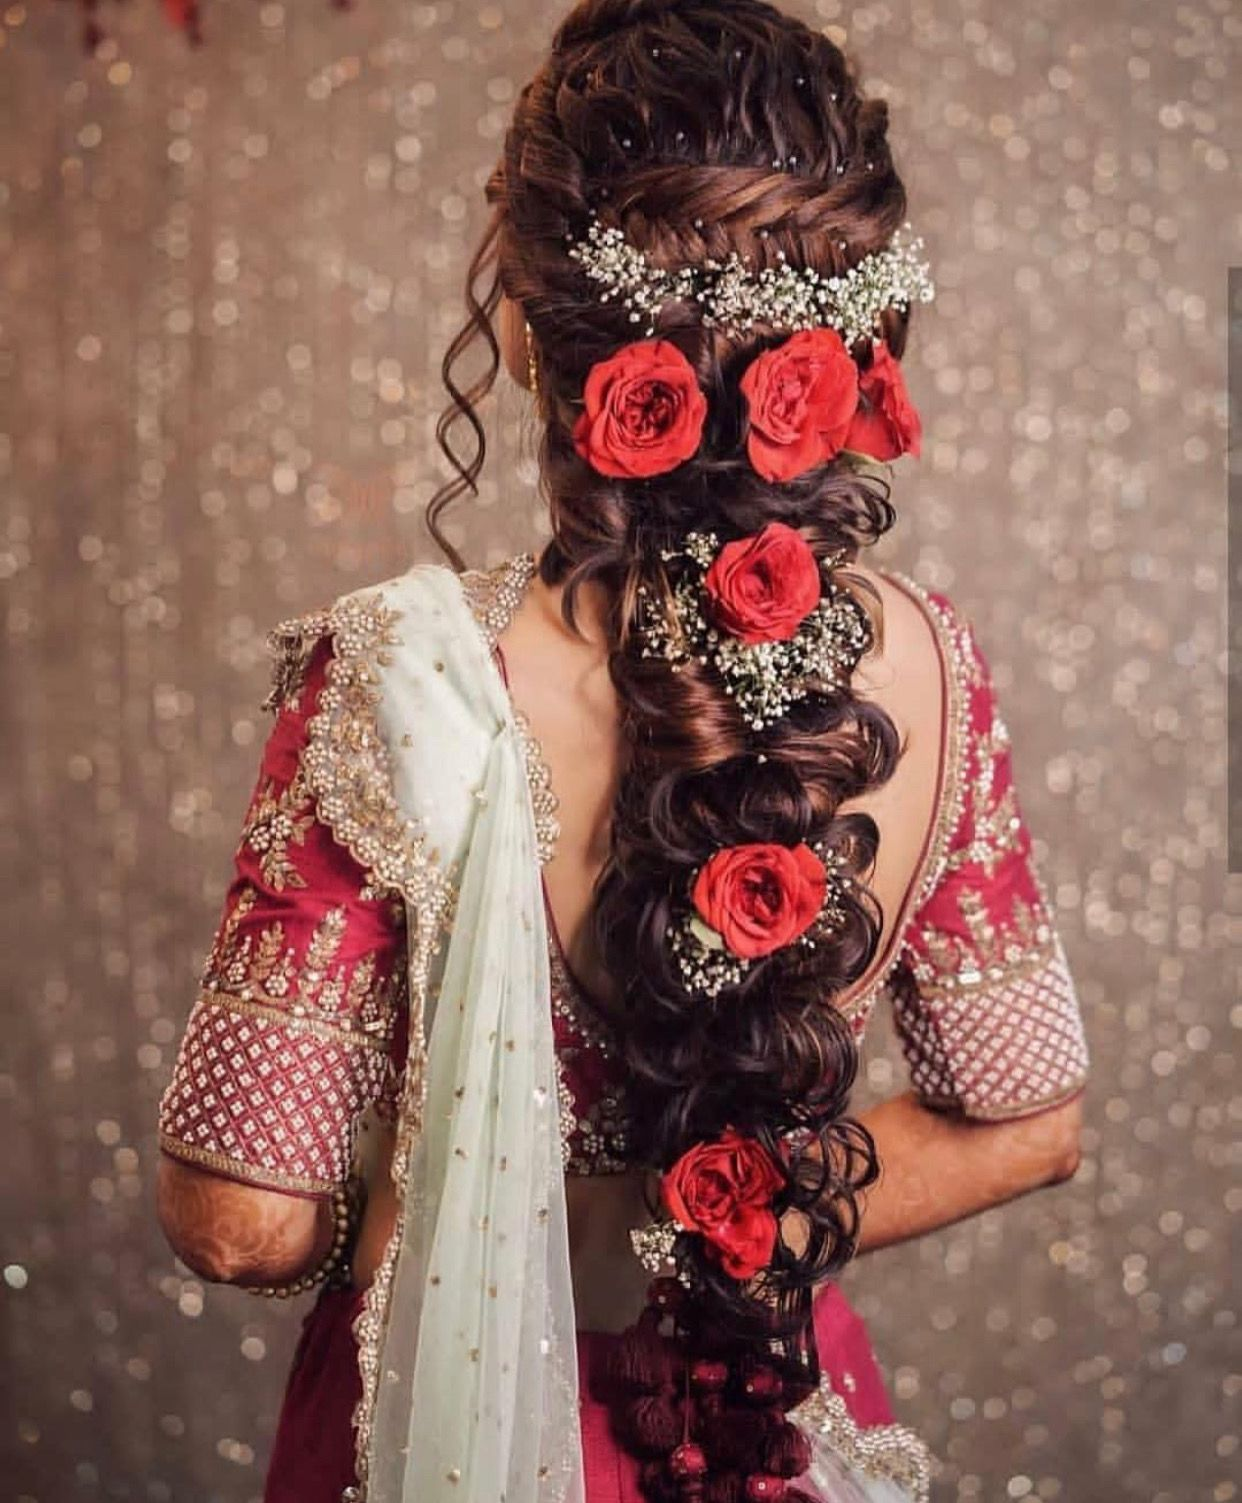 pinterest: @pawank90 | makeup and hair in 2019 | hair styles